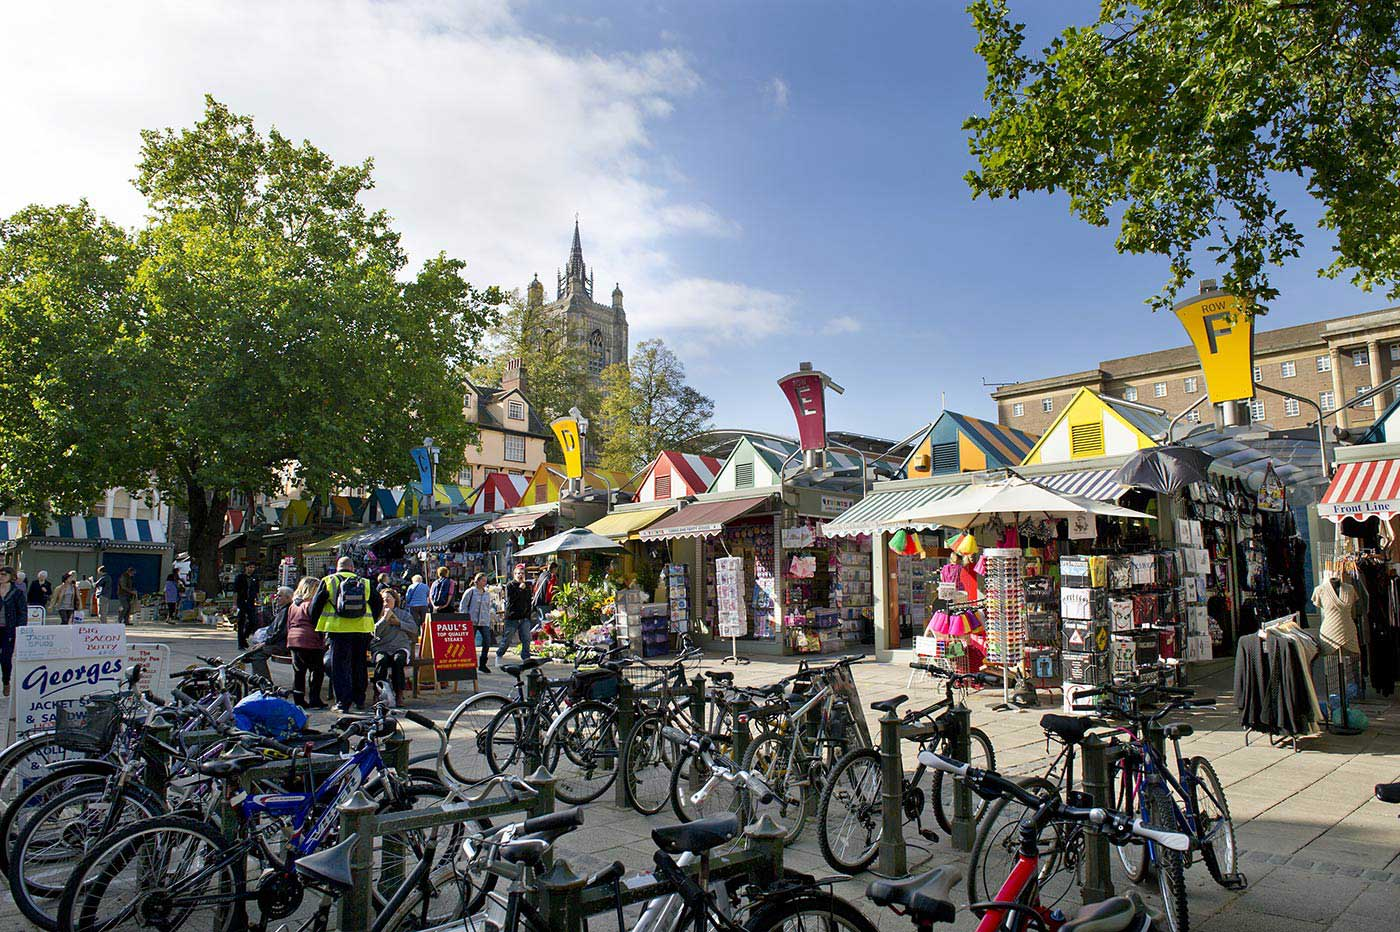 Explore the largest open-air market in England Explore the largest open-air market in England